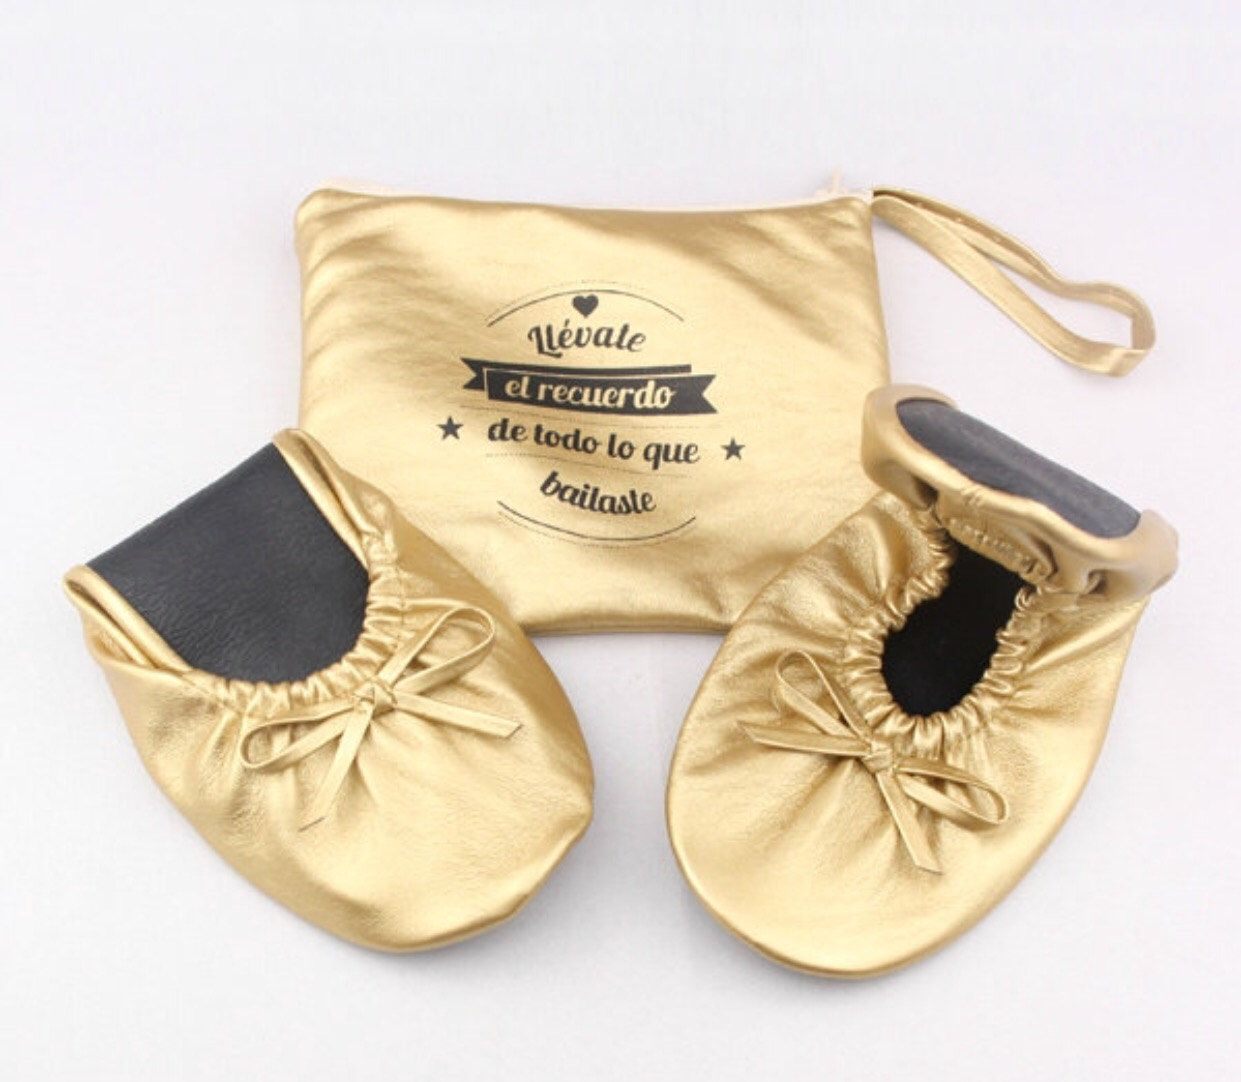 Personalized Rollable Flats Wedding For Guest Foldable Ballet Shoes Favor Roll Up